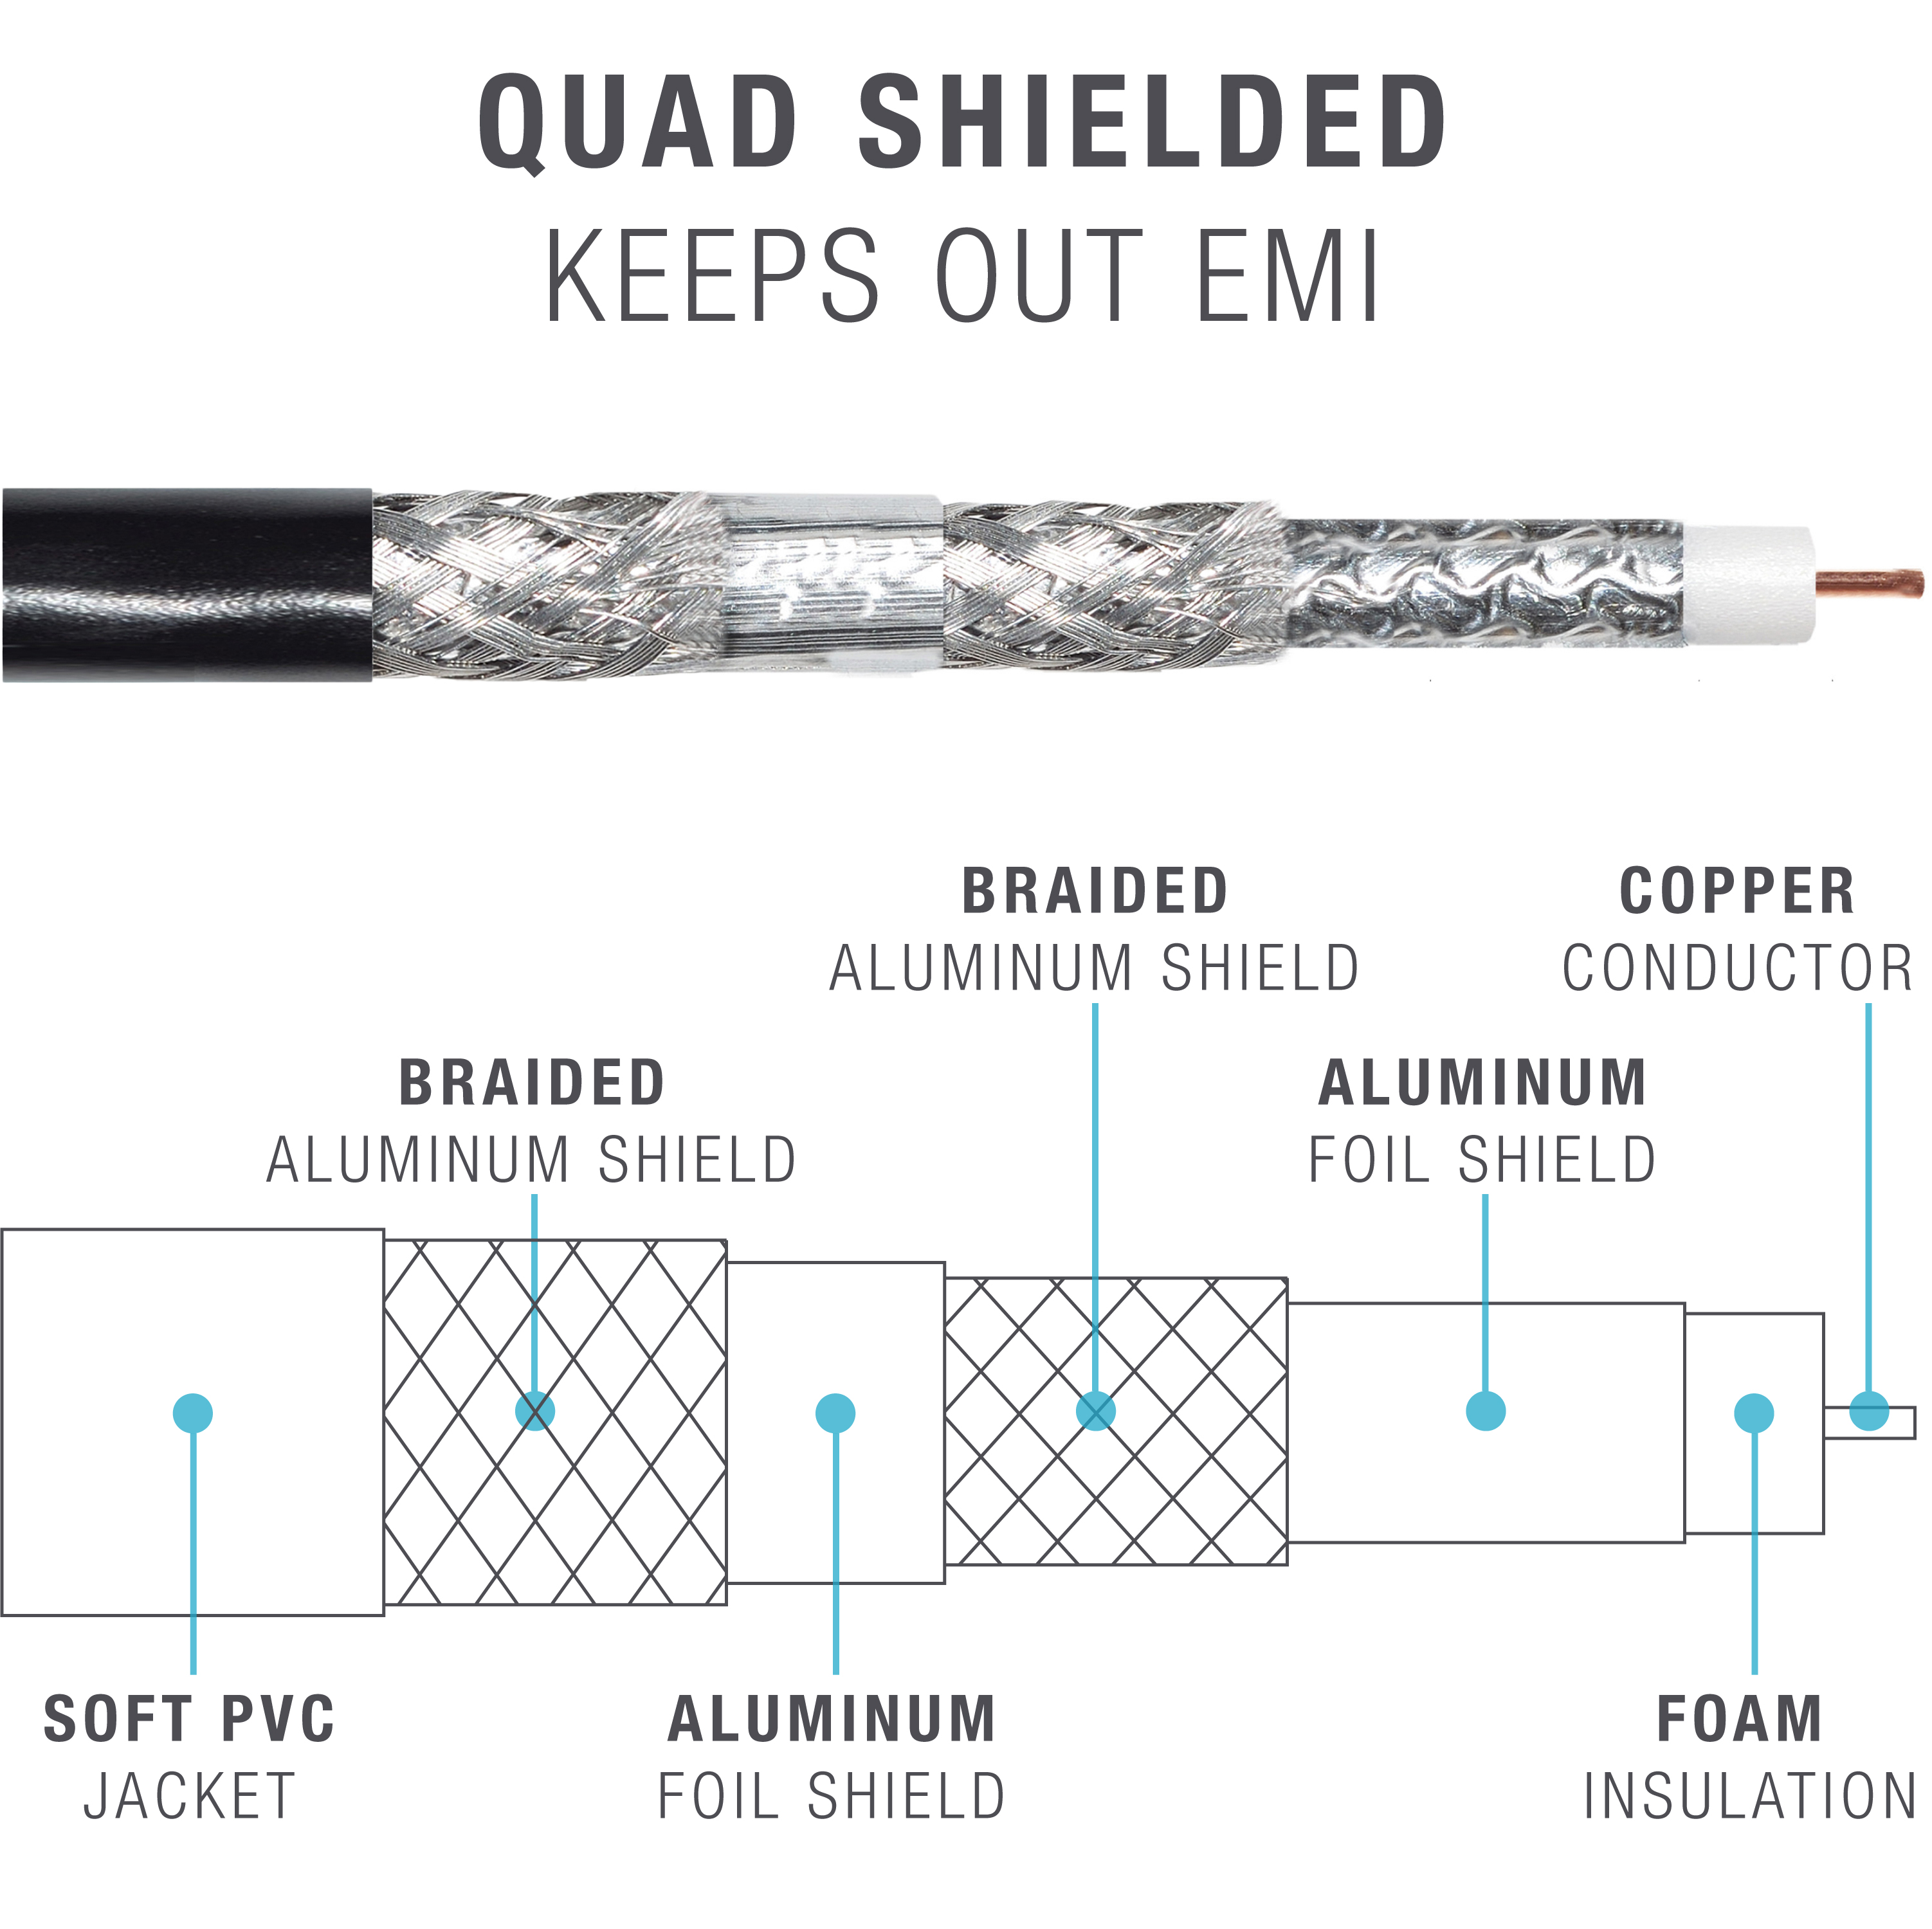 RG6 Quad Shielded Coaxial Cable (500 Feet) – w/ Convenient Pull-Out Box  (500 Feet)